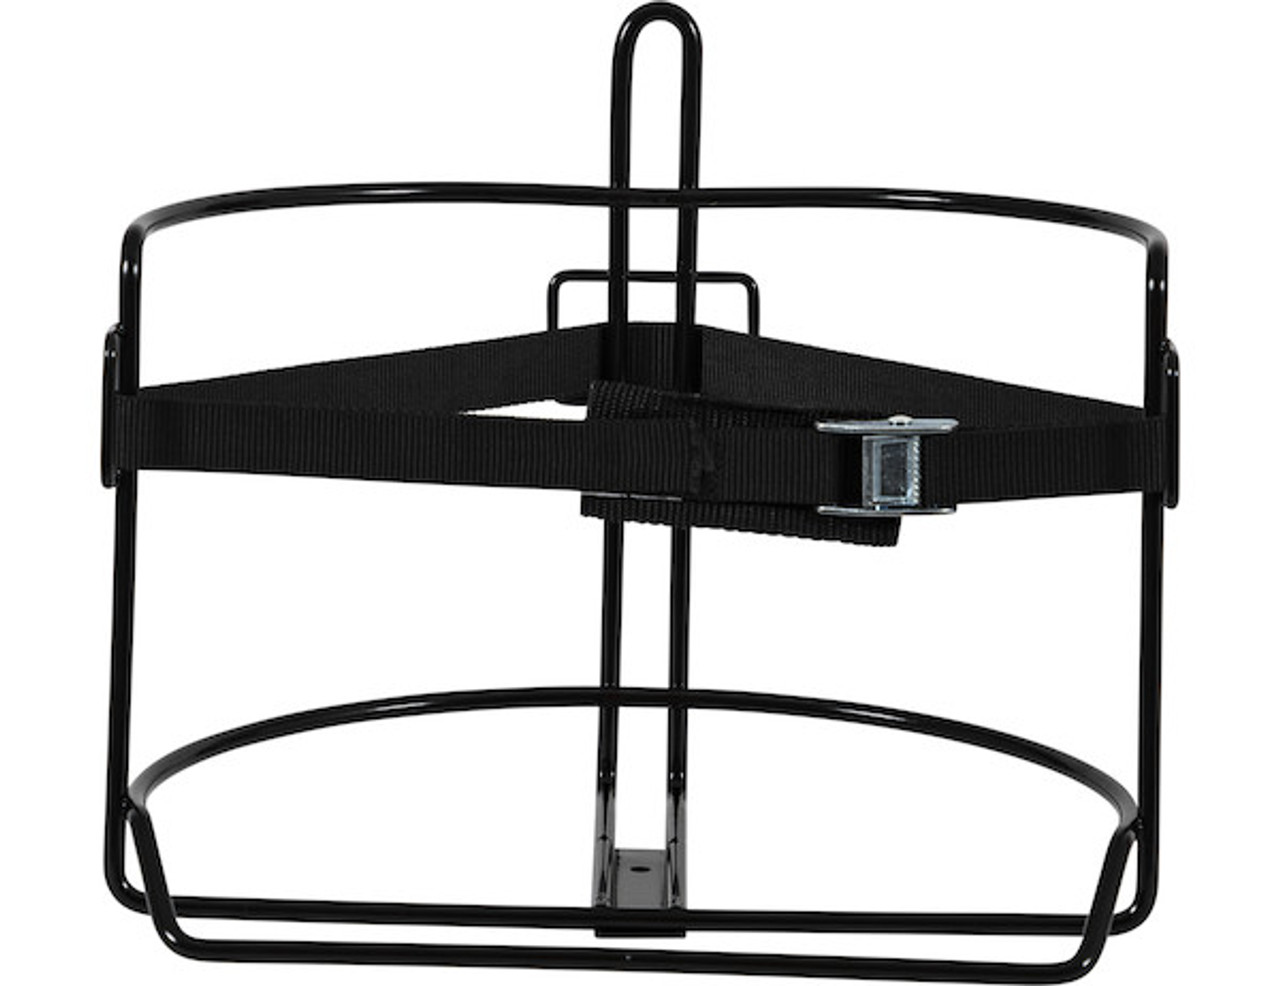 Buyers 5201007 5 Gallon Wire Form Water Cooler Rack for Trailers Picture # 1